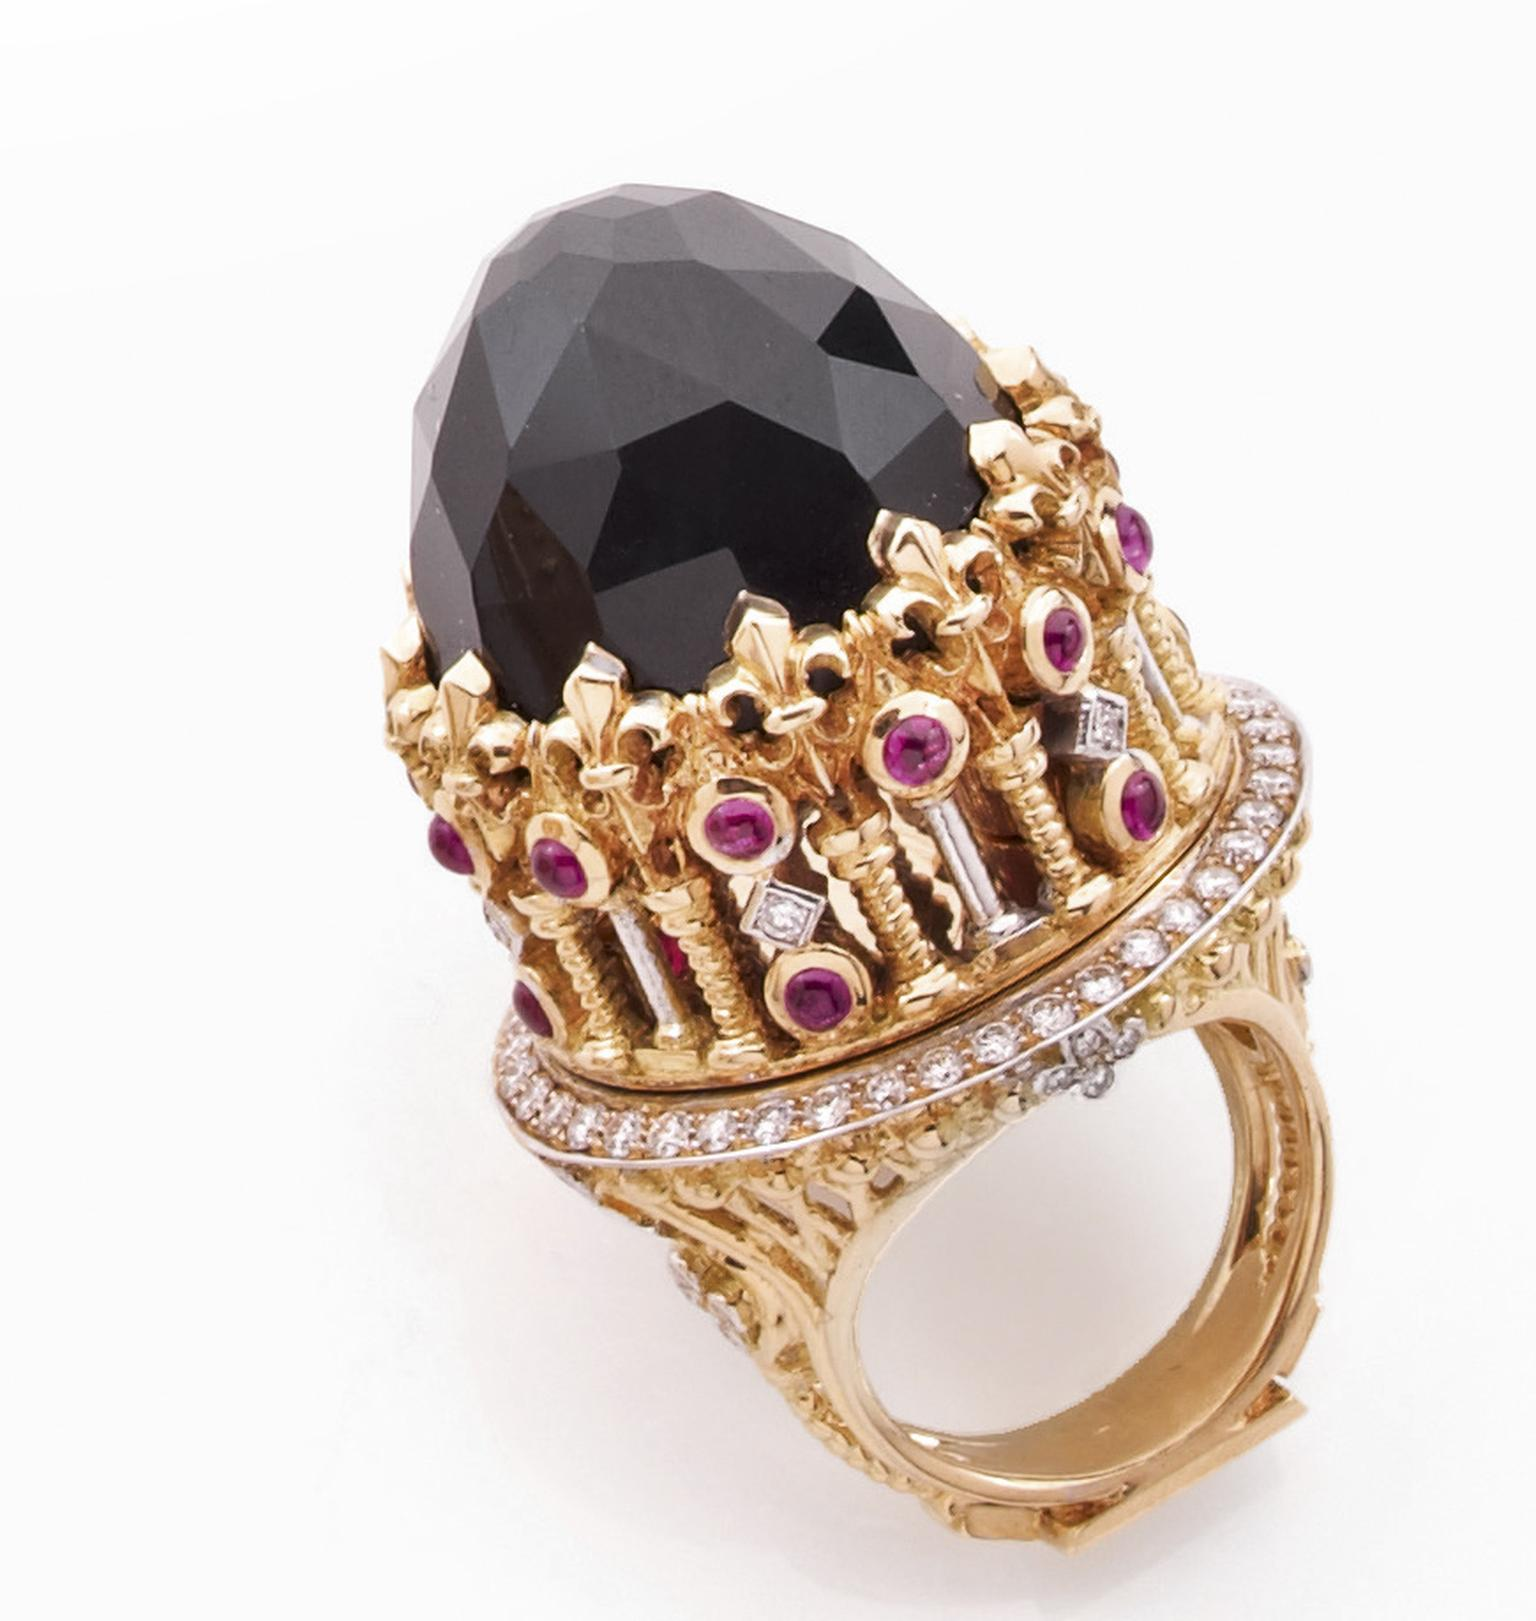 Jean Boggio Ca' d'Oro ring in yellow and grey gold with black jade, rubies and diamonds.